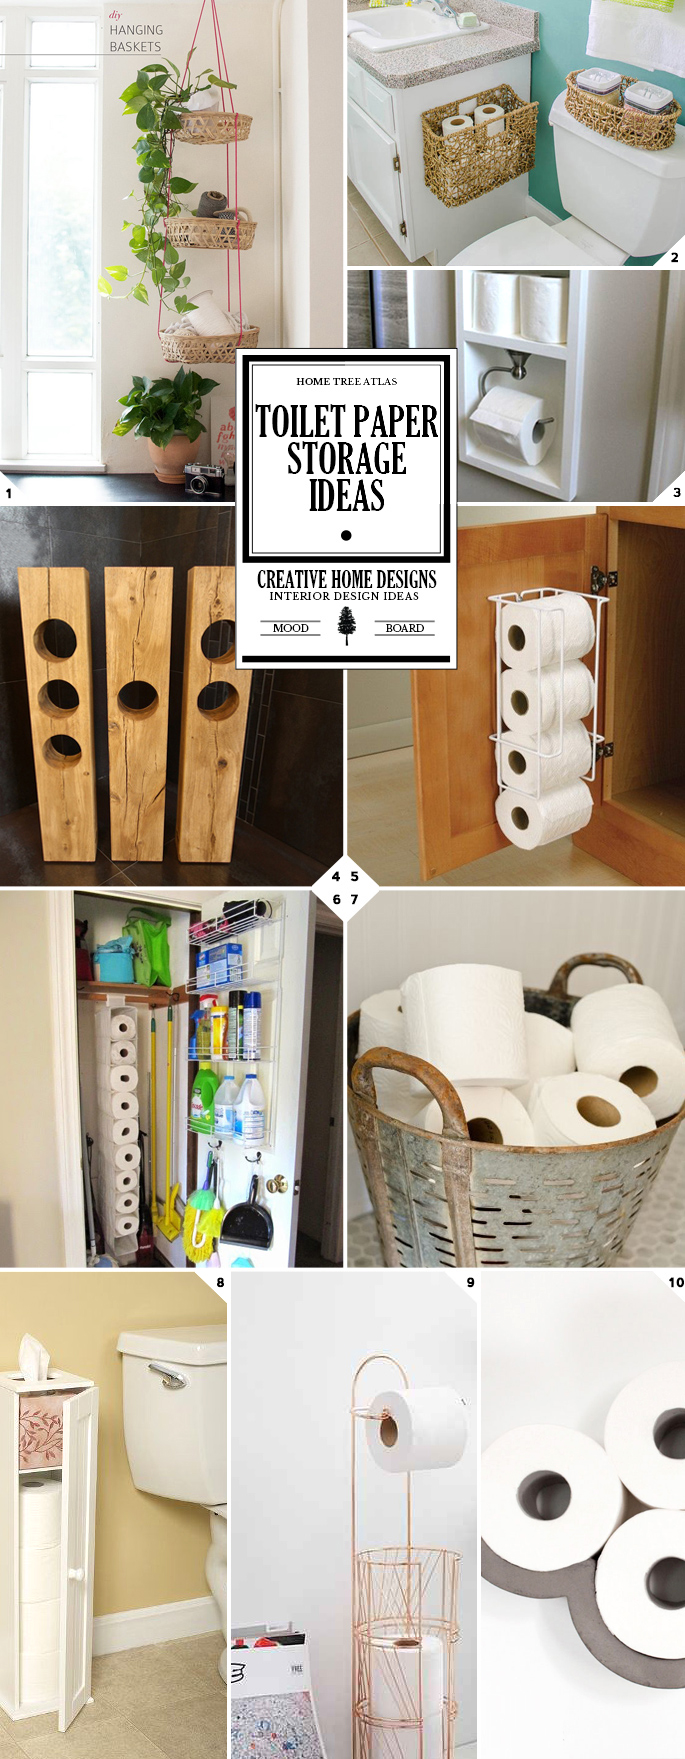 Bathroom toilet paper storage ideas (DIY, and for small spaces)